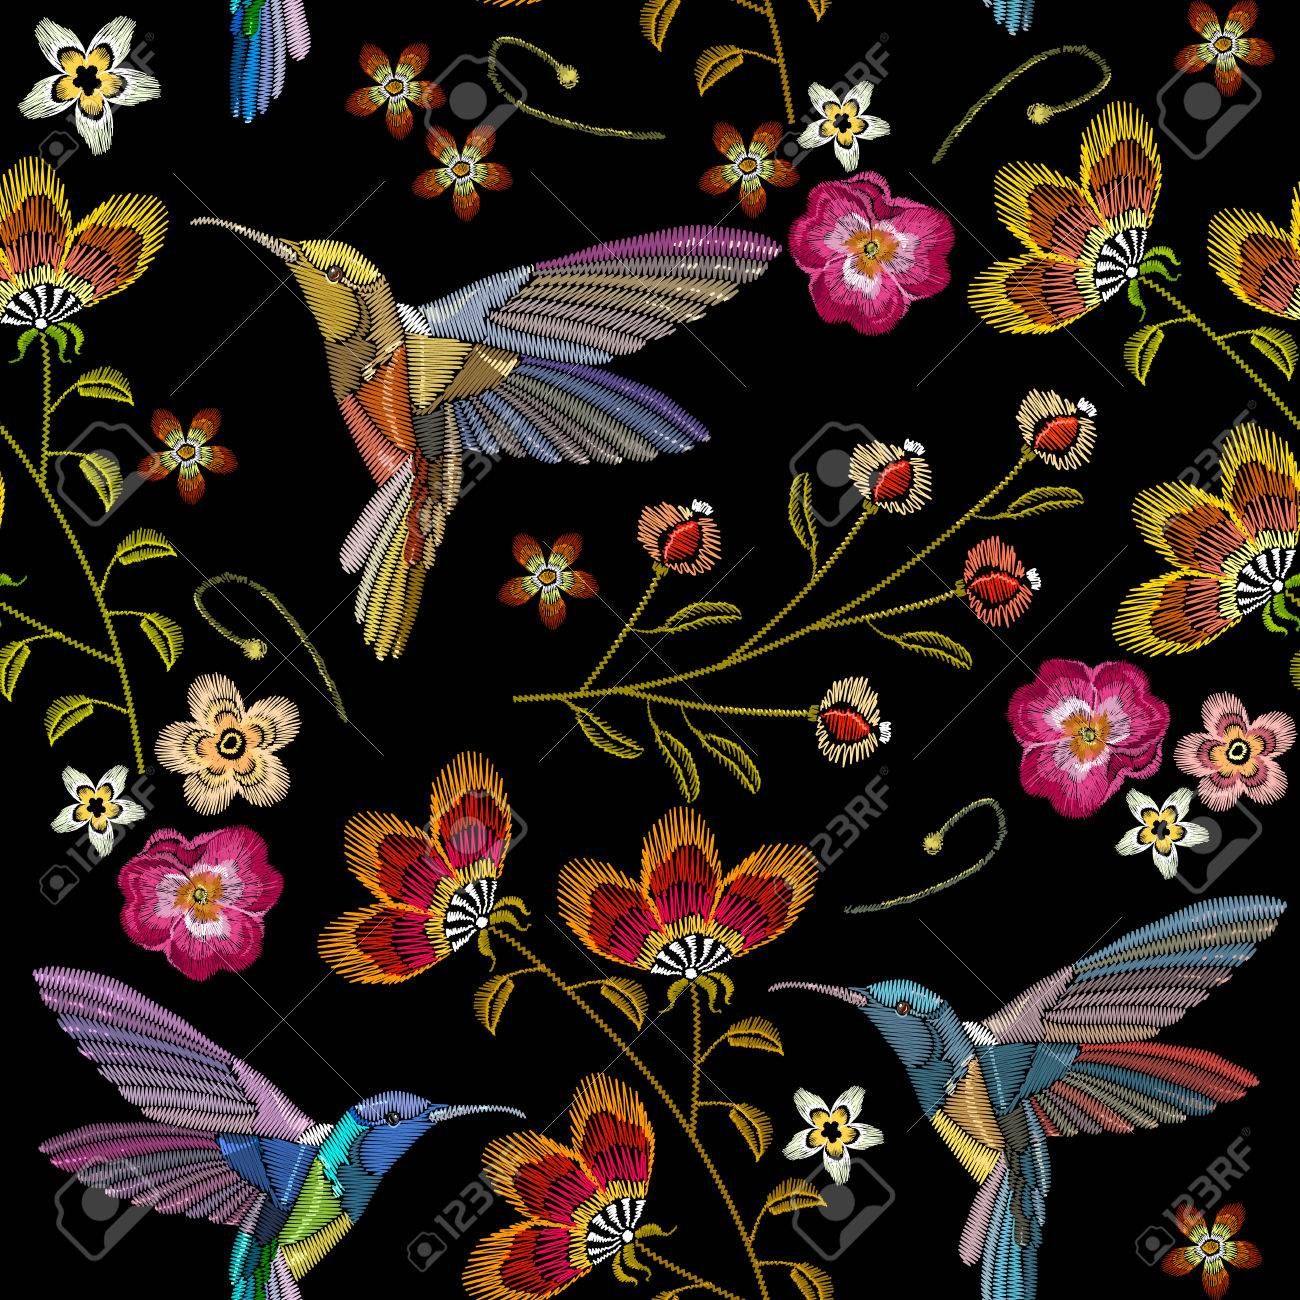 Humming Bird And Tropical Flowers Embroidery Seamless Pattern